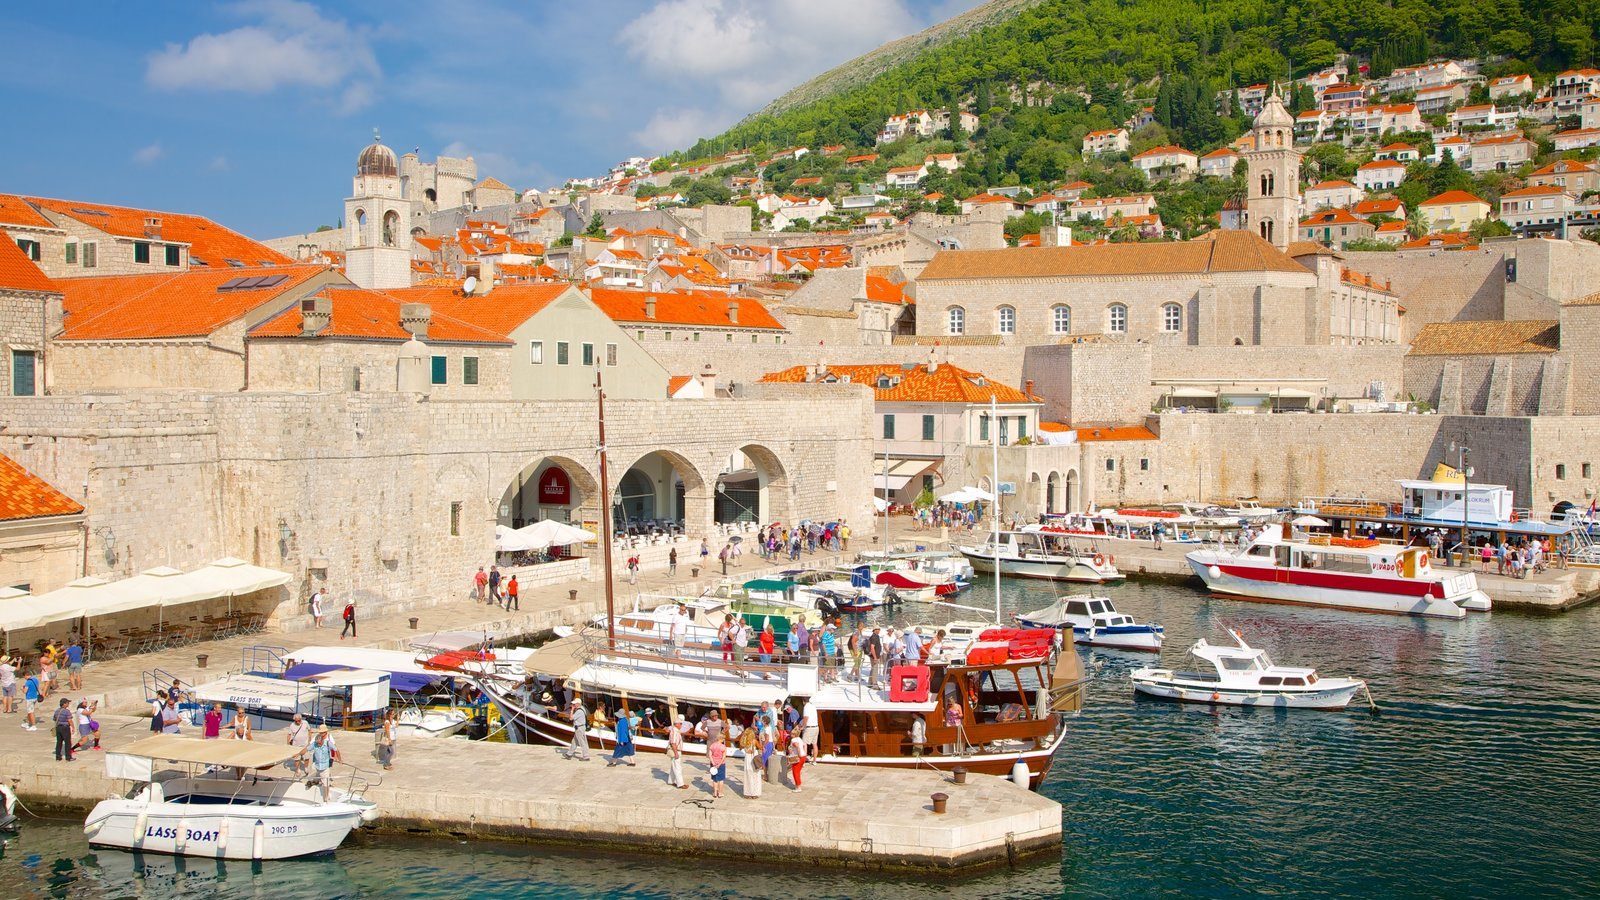 Dubrovnik - Southern Dalmatia which includes heritage architecture, a coastal town and a bay or harbor